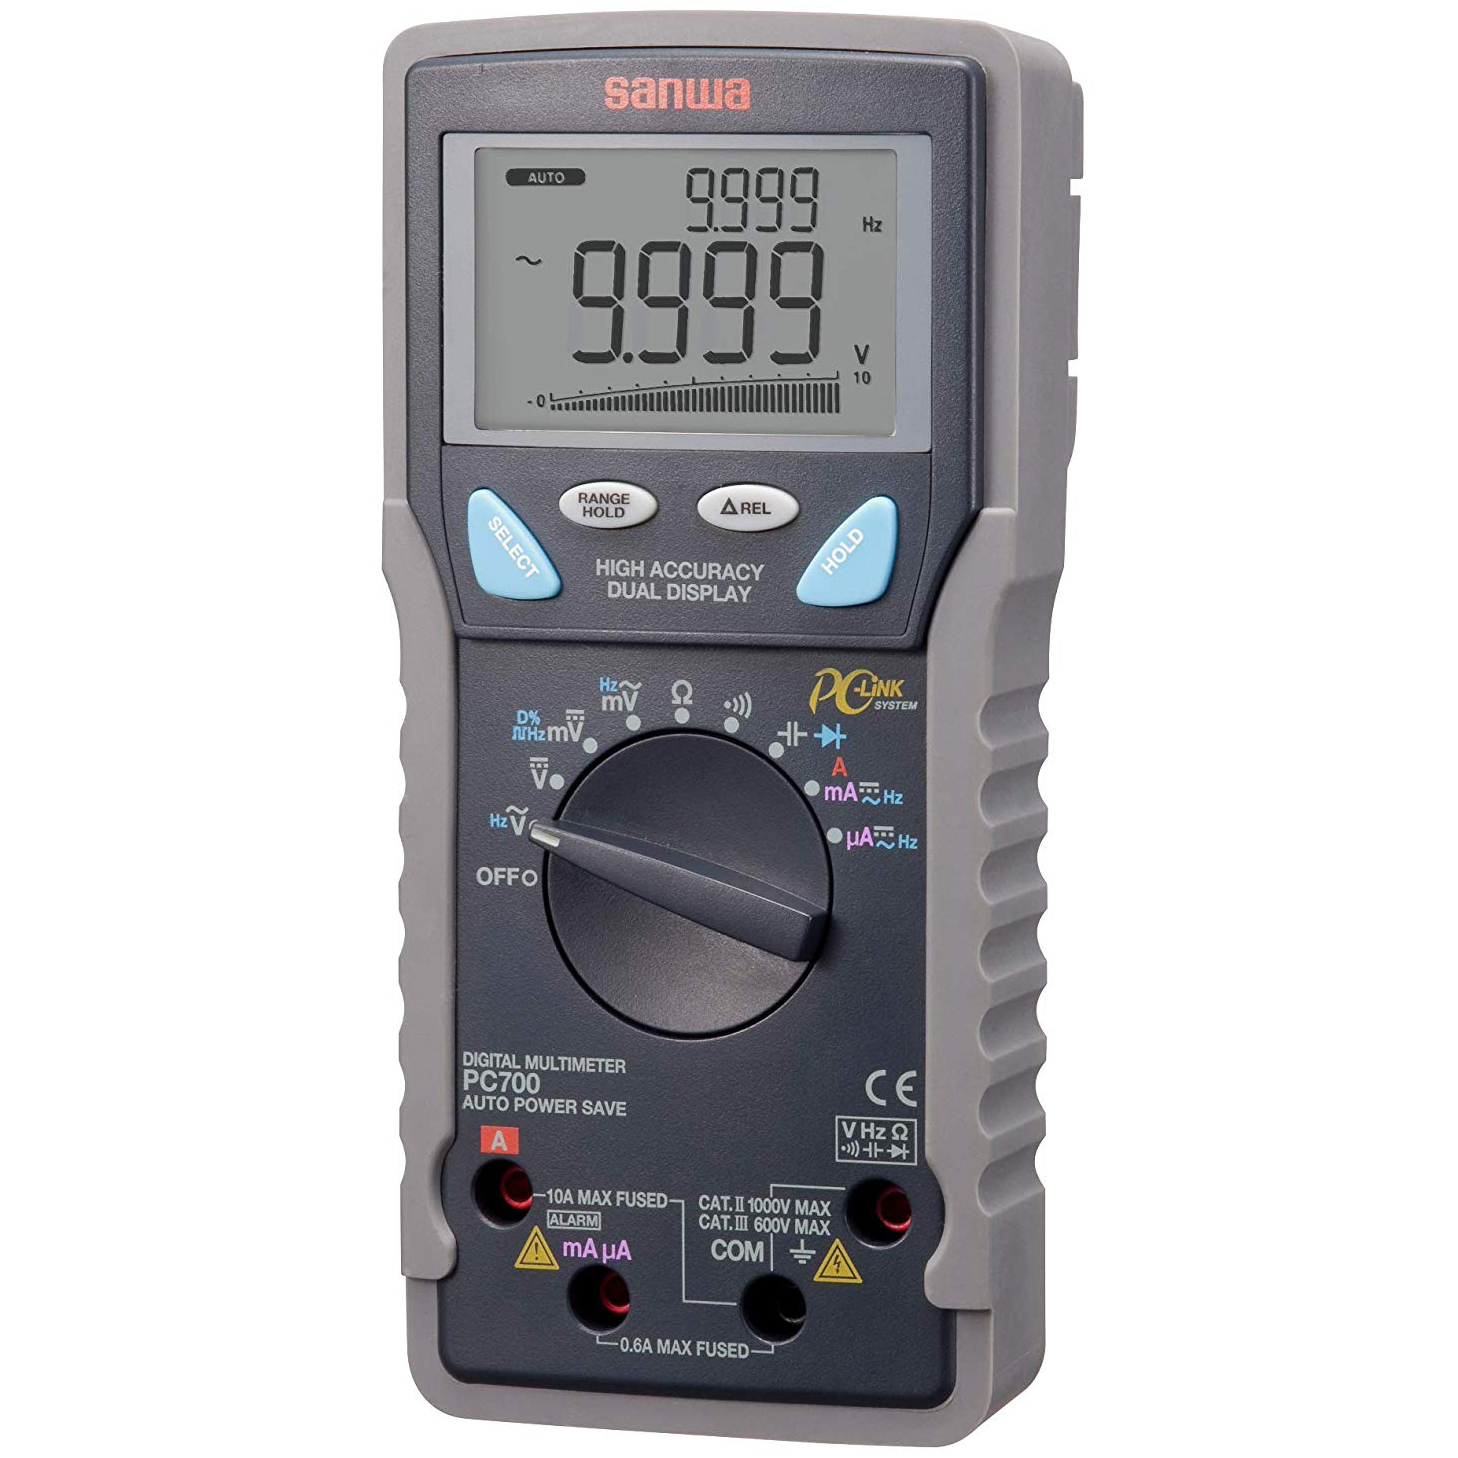 FMUSER SANWA PC700 Advanced Intelligent Digital Multimeter Full Overload Protection vir rekenaarkommunikasie